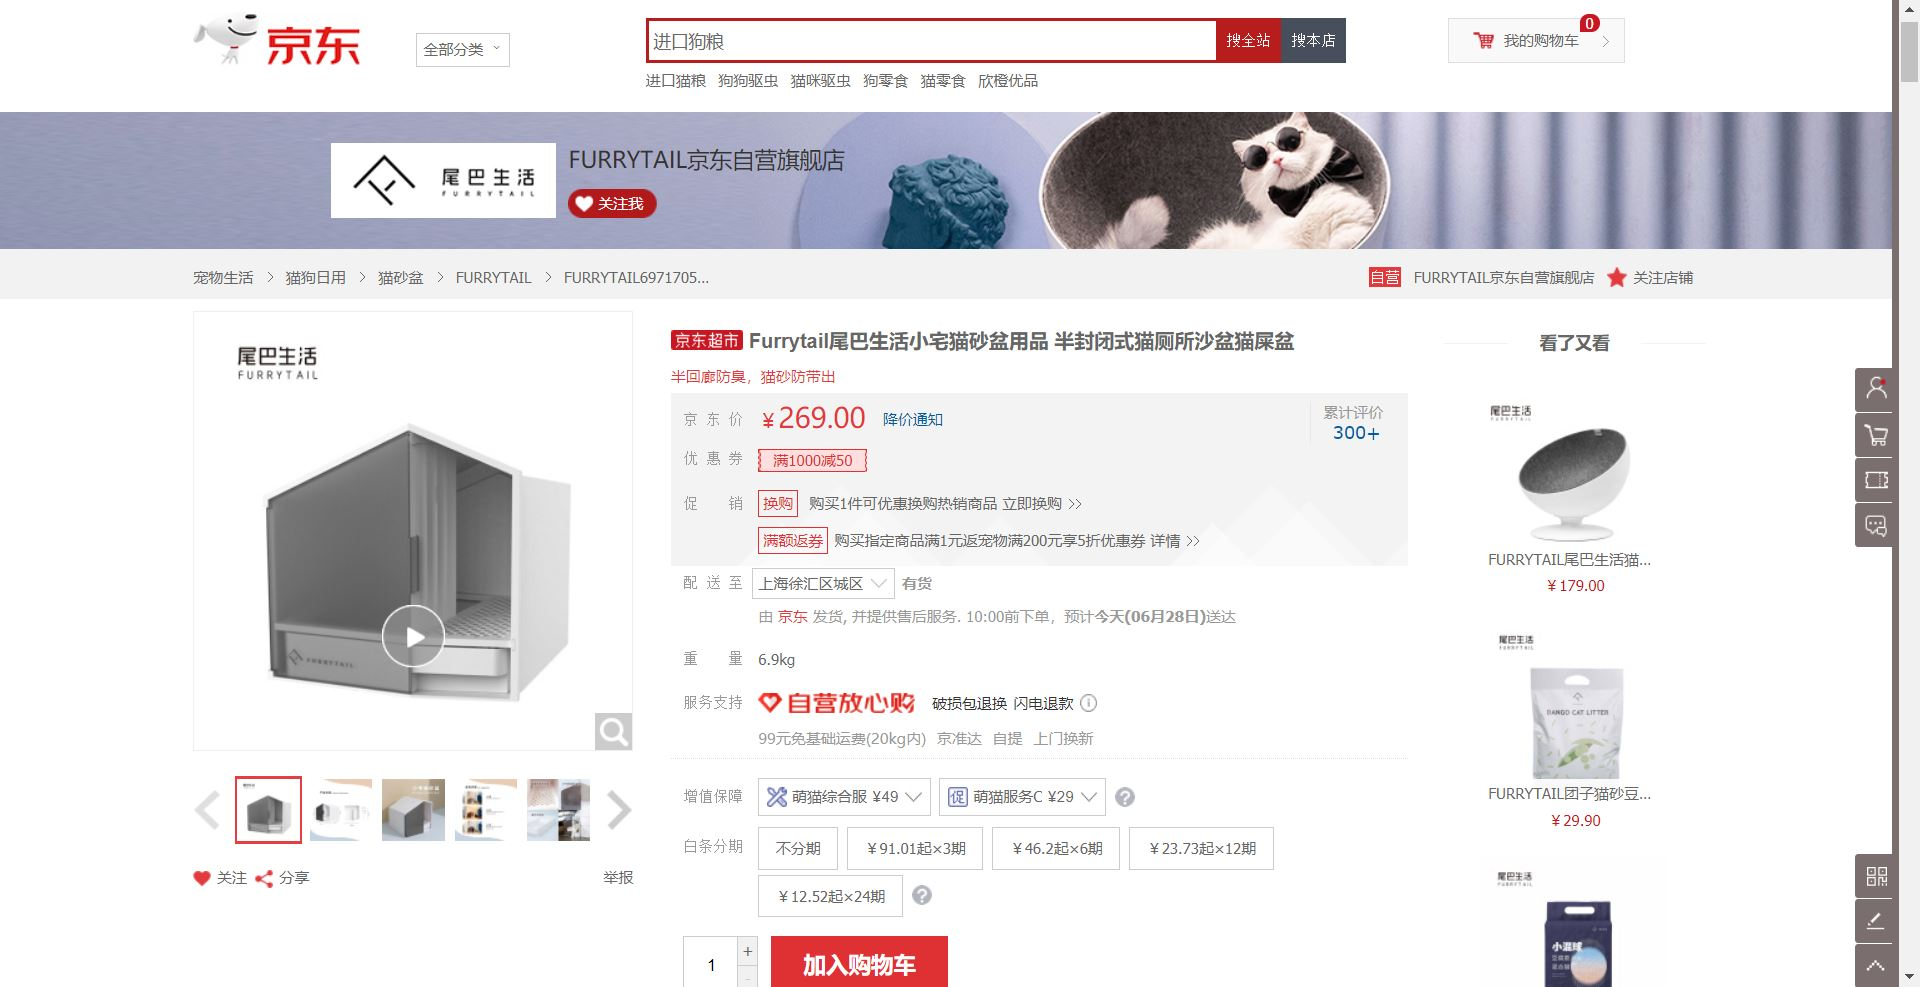 Daily Best seller in jd.com - June 16th 2019